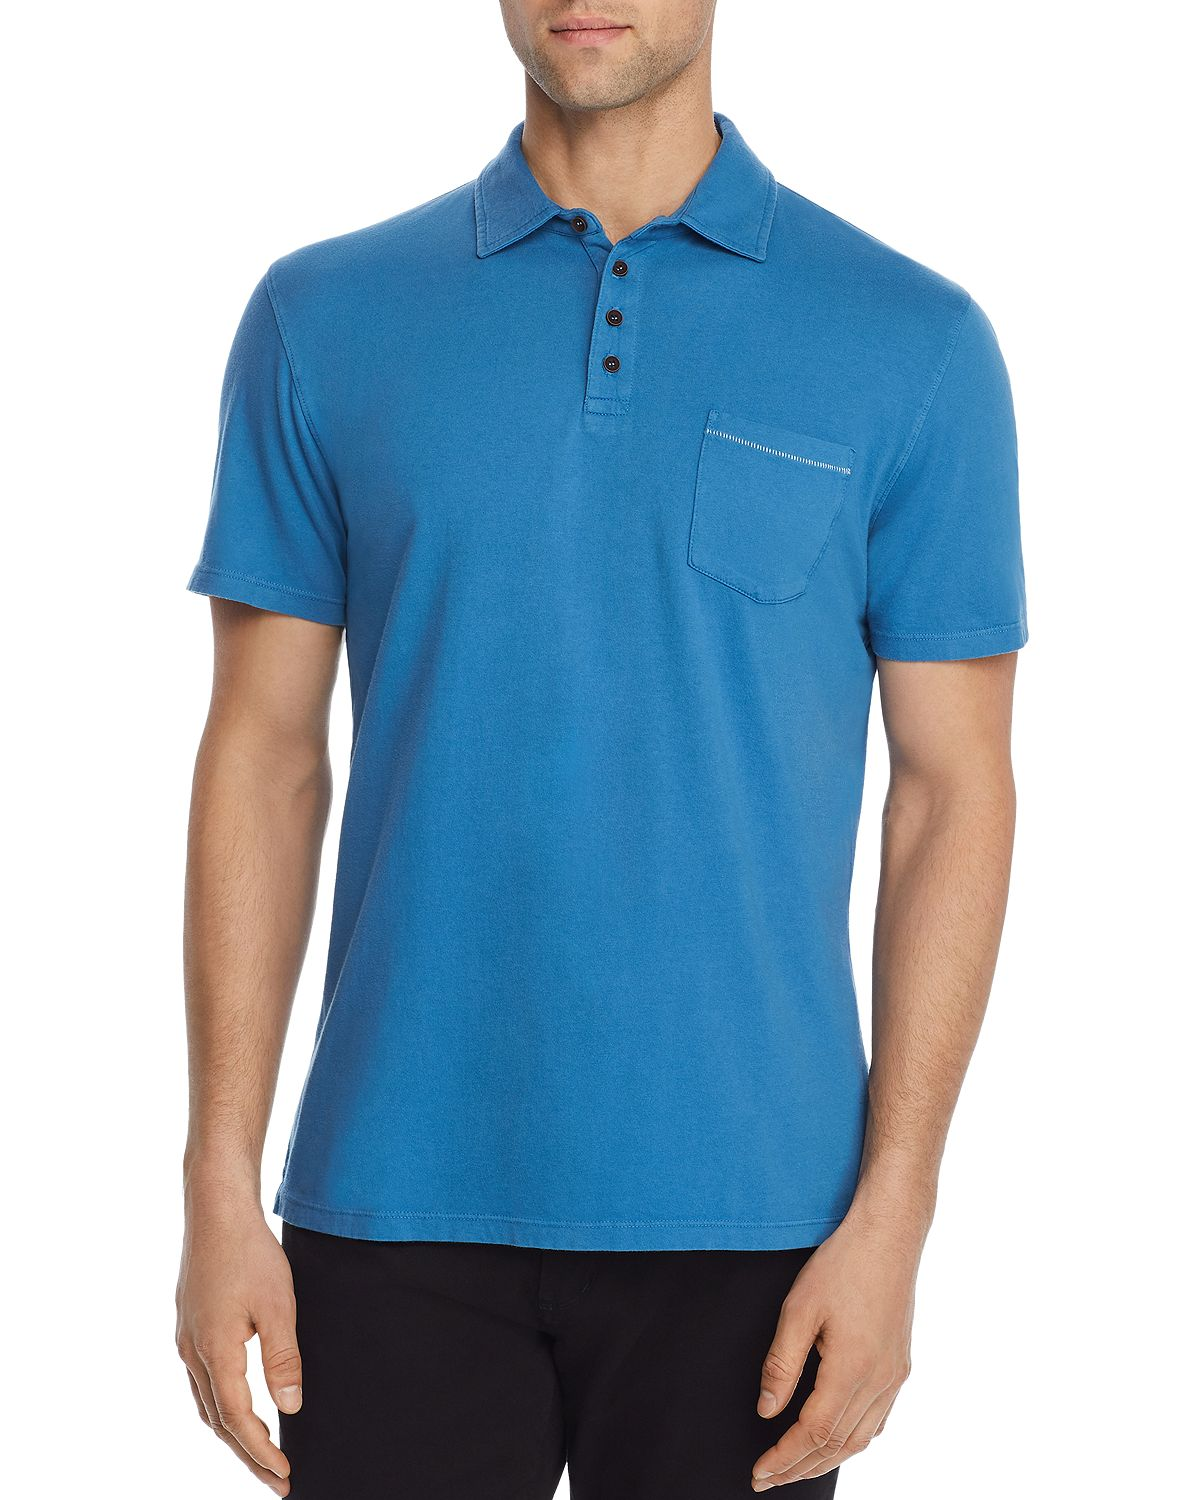 M Singer Polo Shirt